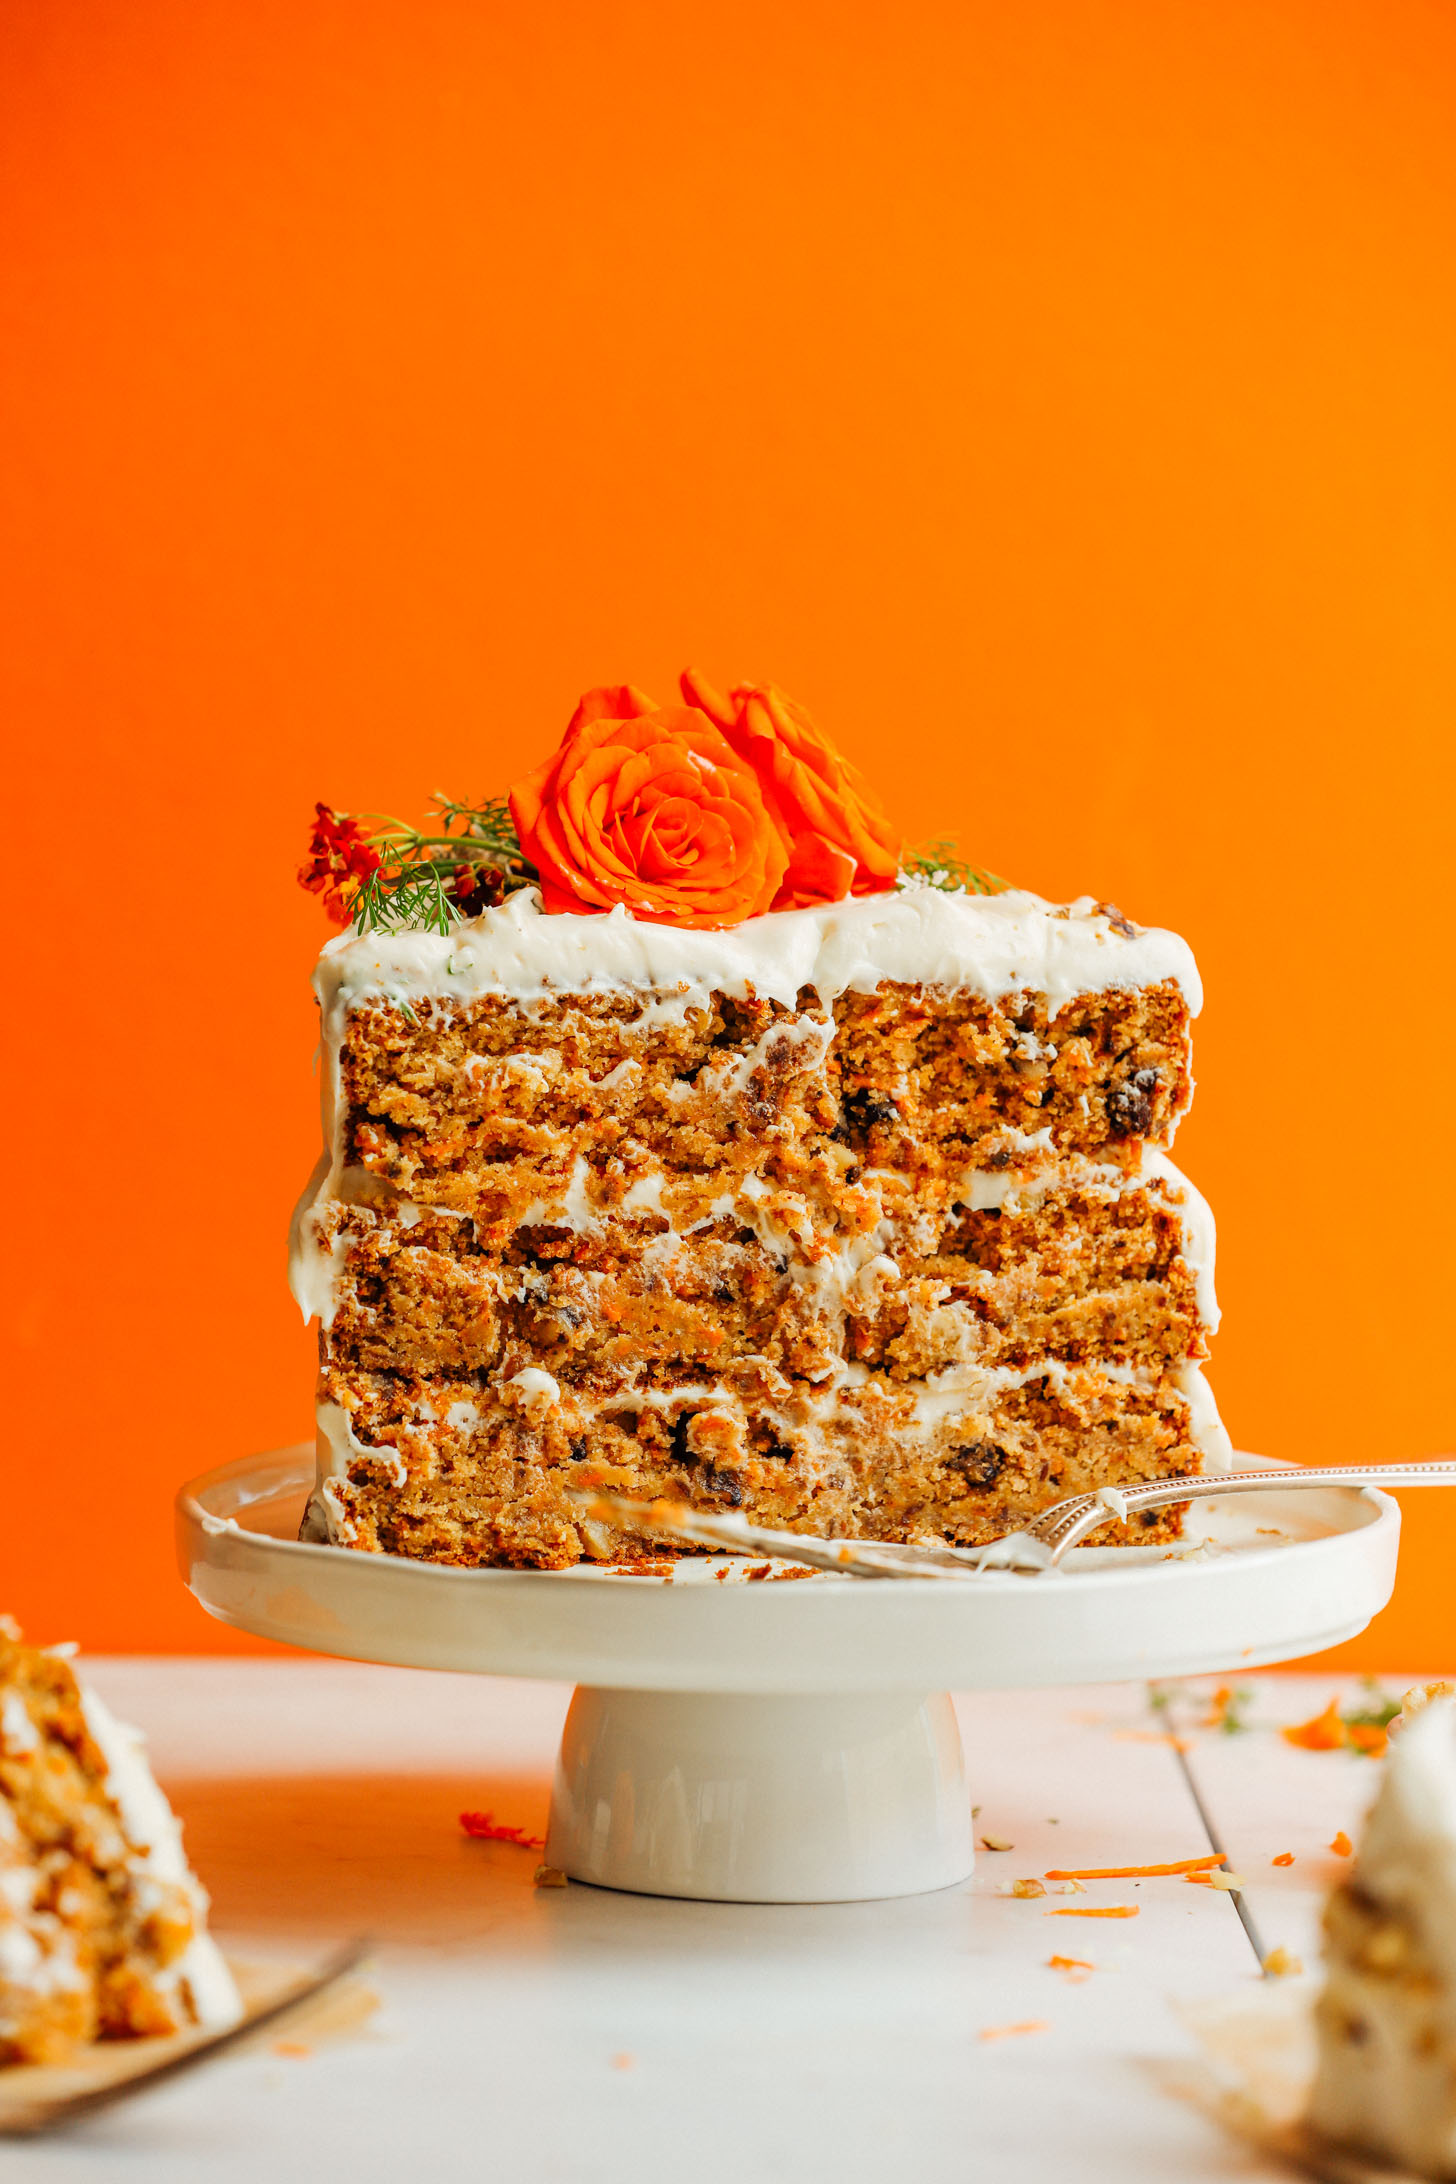 Inside view of Vegan Gluten-Free Carrot Cake on a cake stand